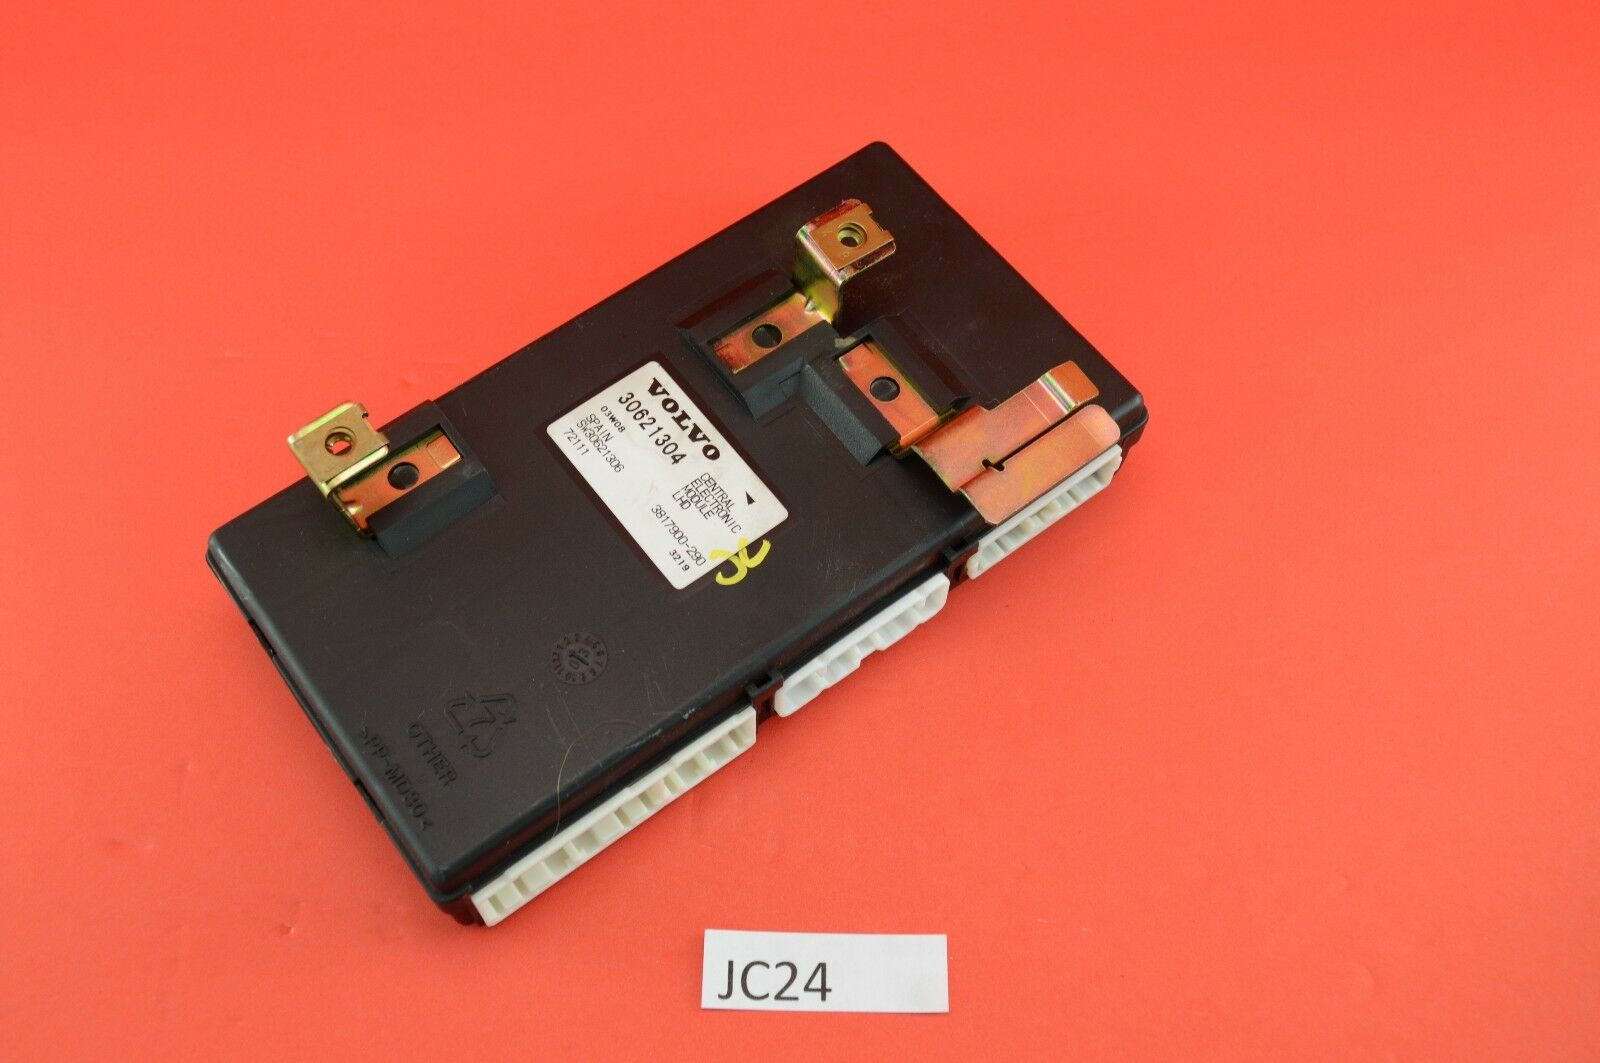 Mw V Qowr Hh Uacdjoygww further S L furthermore  besides Maxresdefault together with . on volvo s40 central electronic module